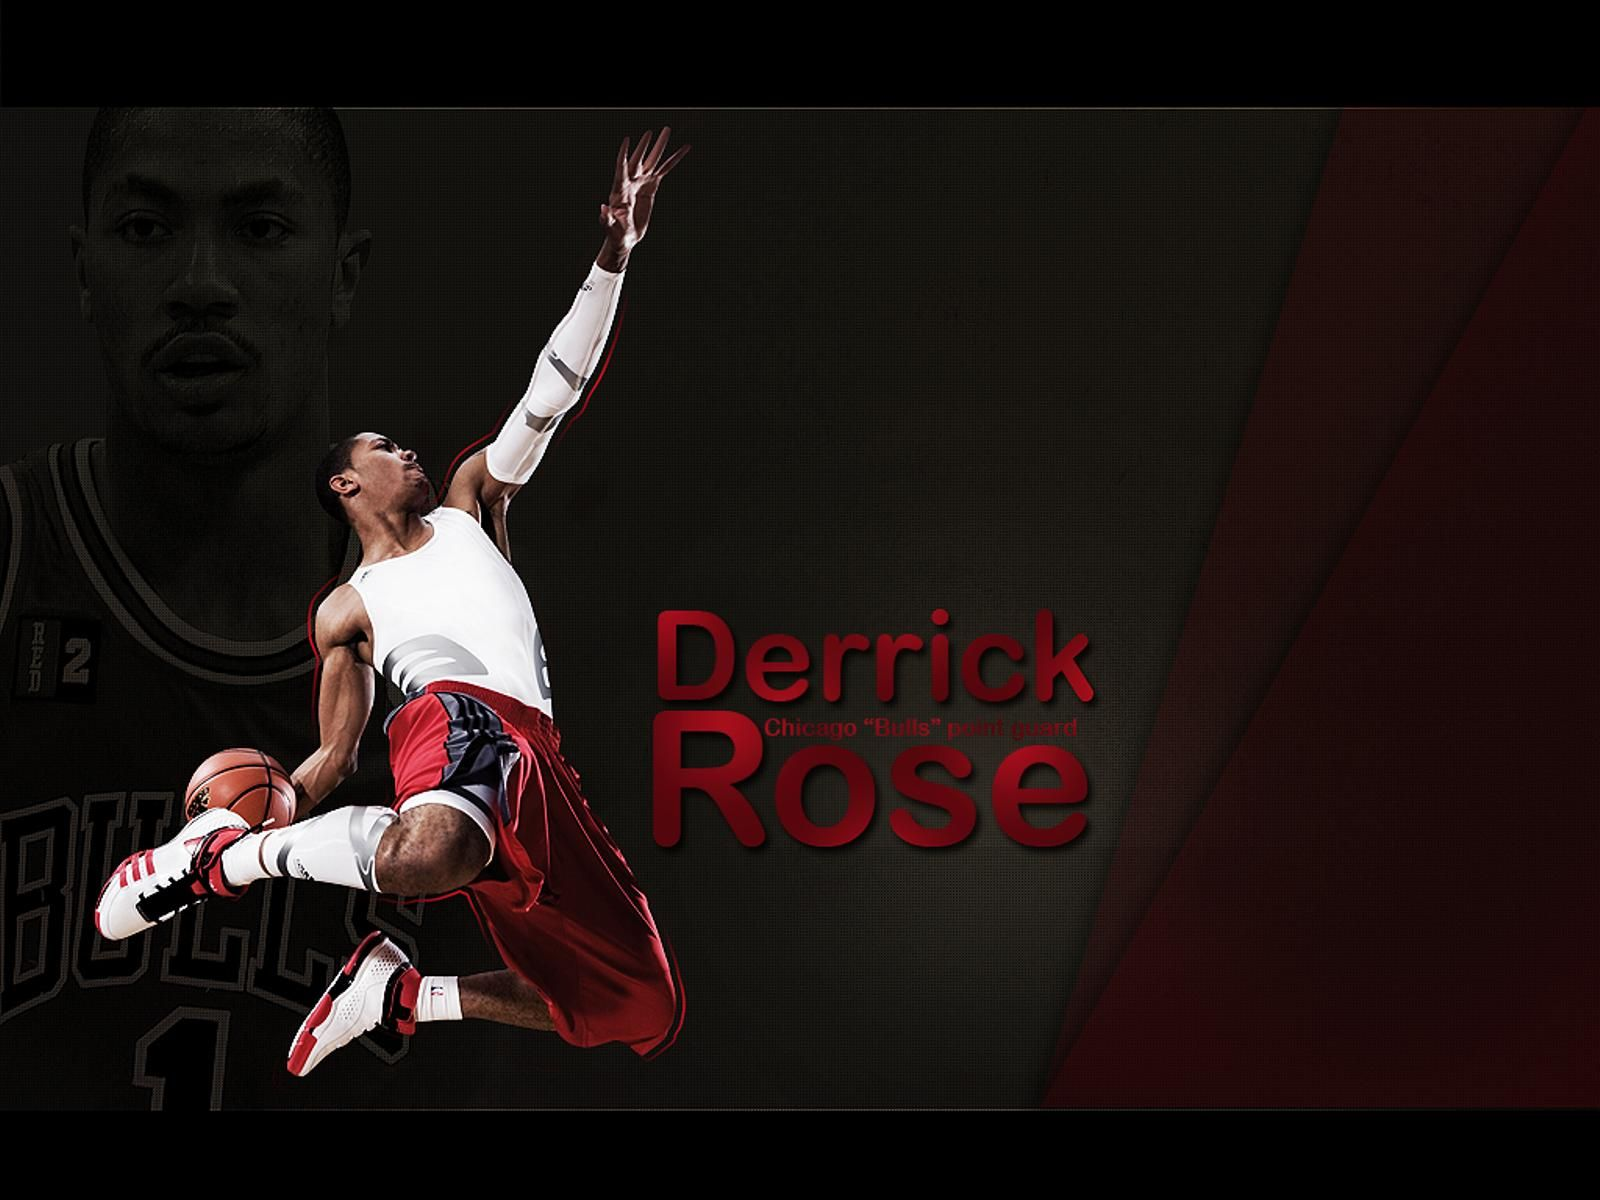 download derrick rose live wallpaper for android| hd